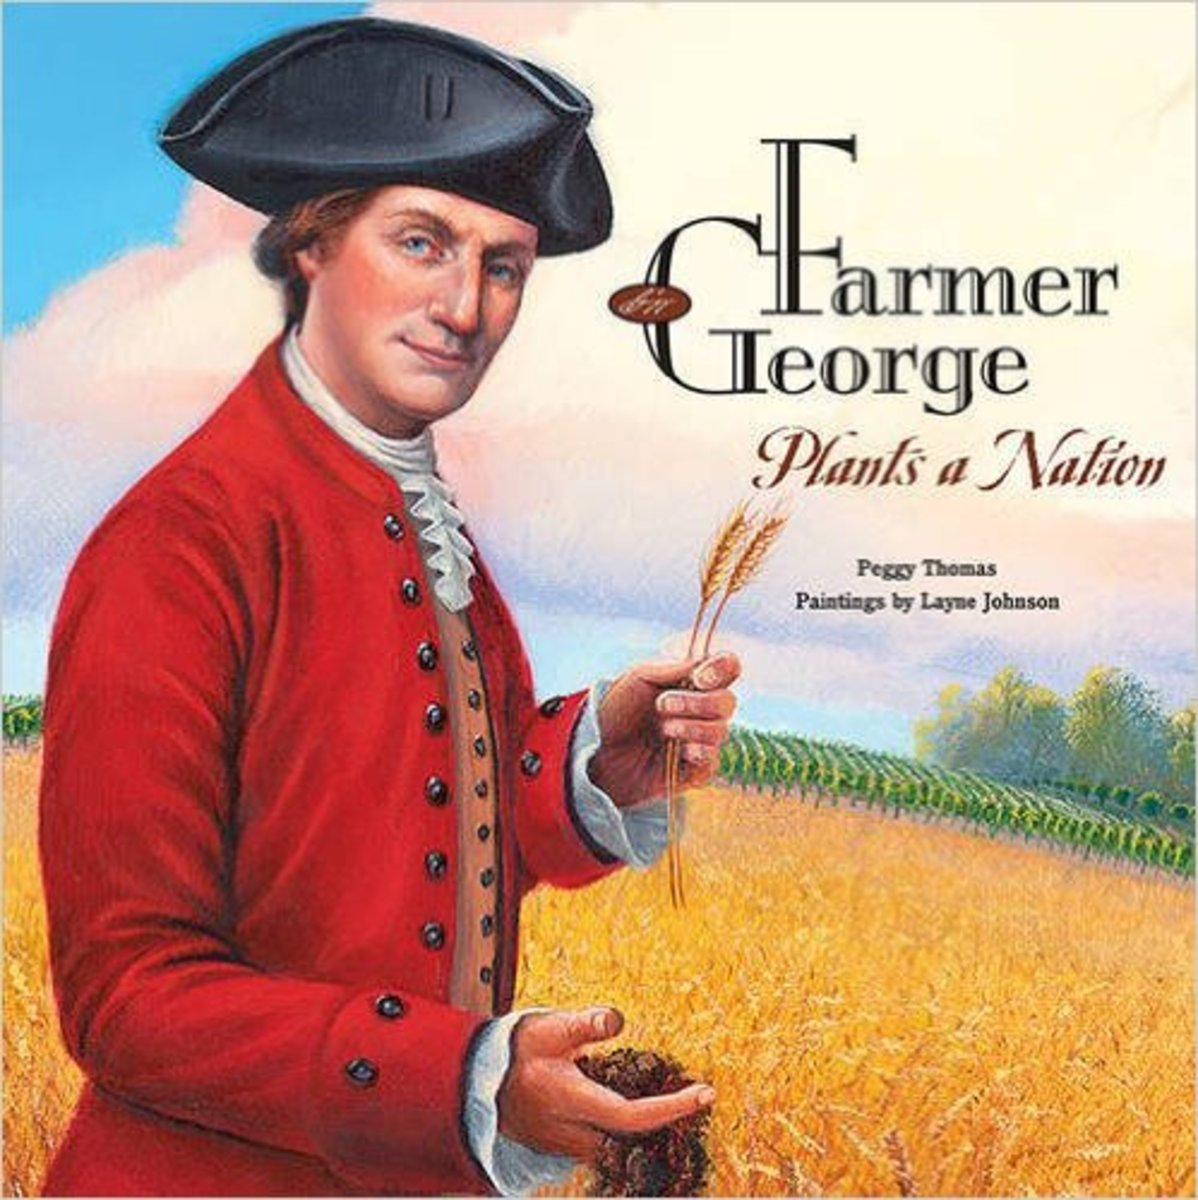 Farmer George Plants a Nation by Peggy Thomas - All images are from amazon.com.